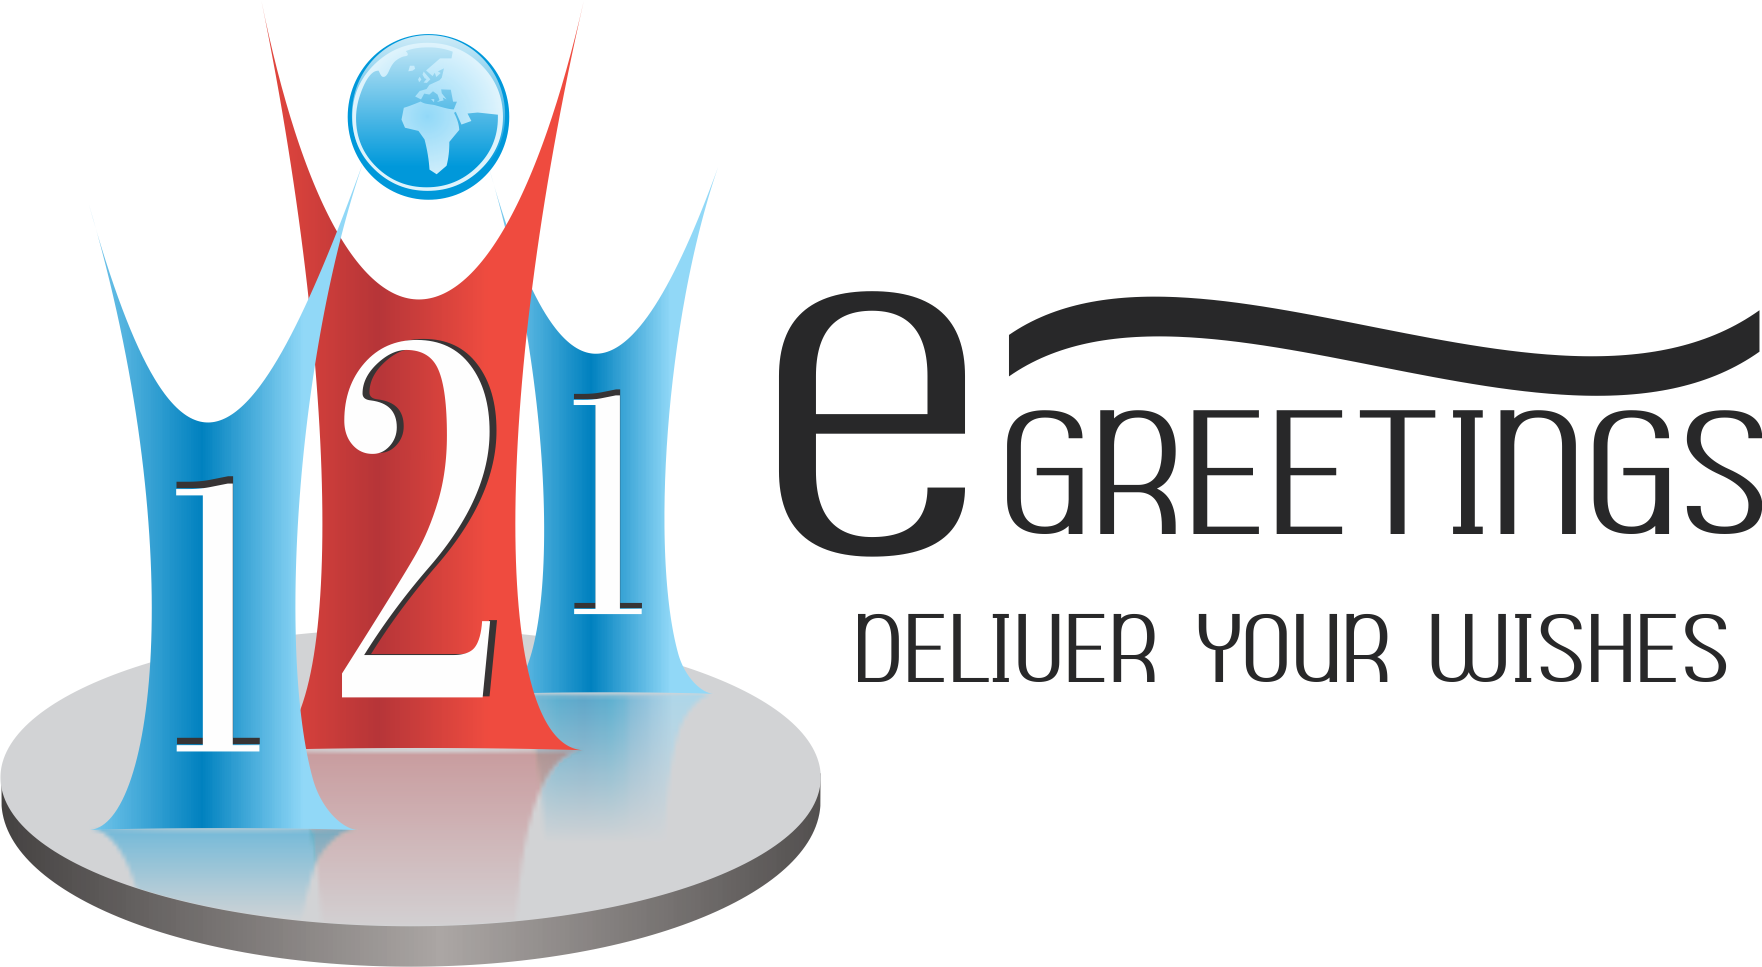 121eGreetings - Social Media & Google Promotion - logo